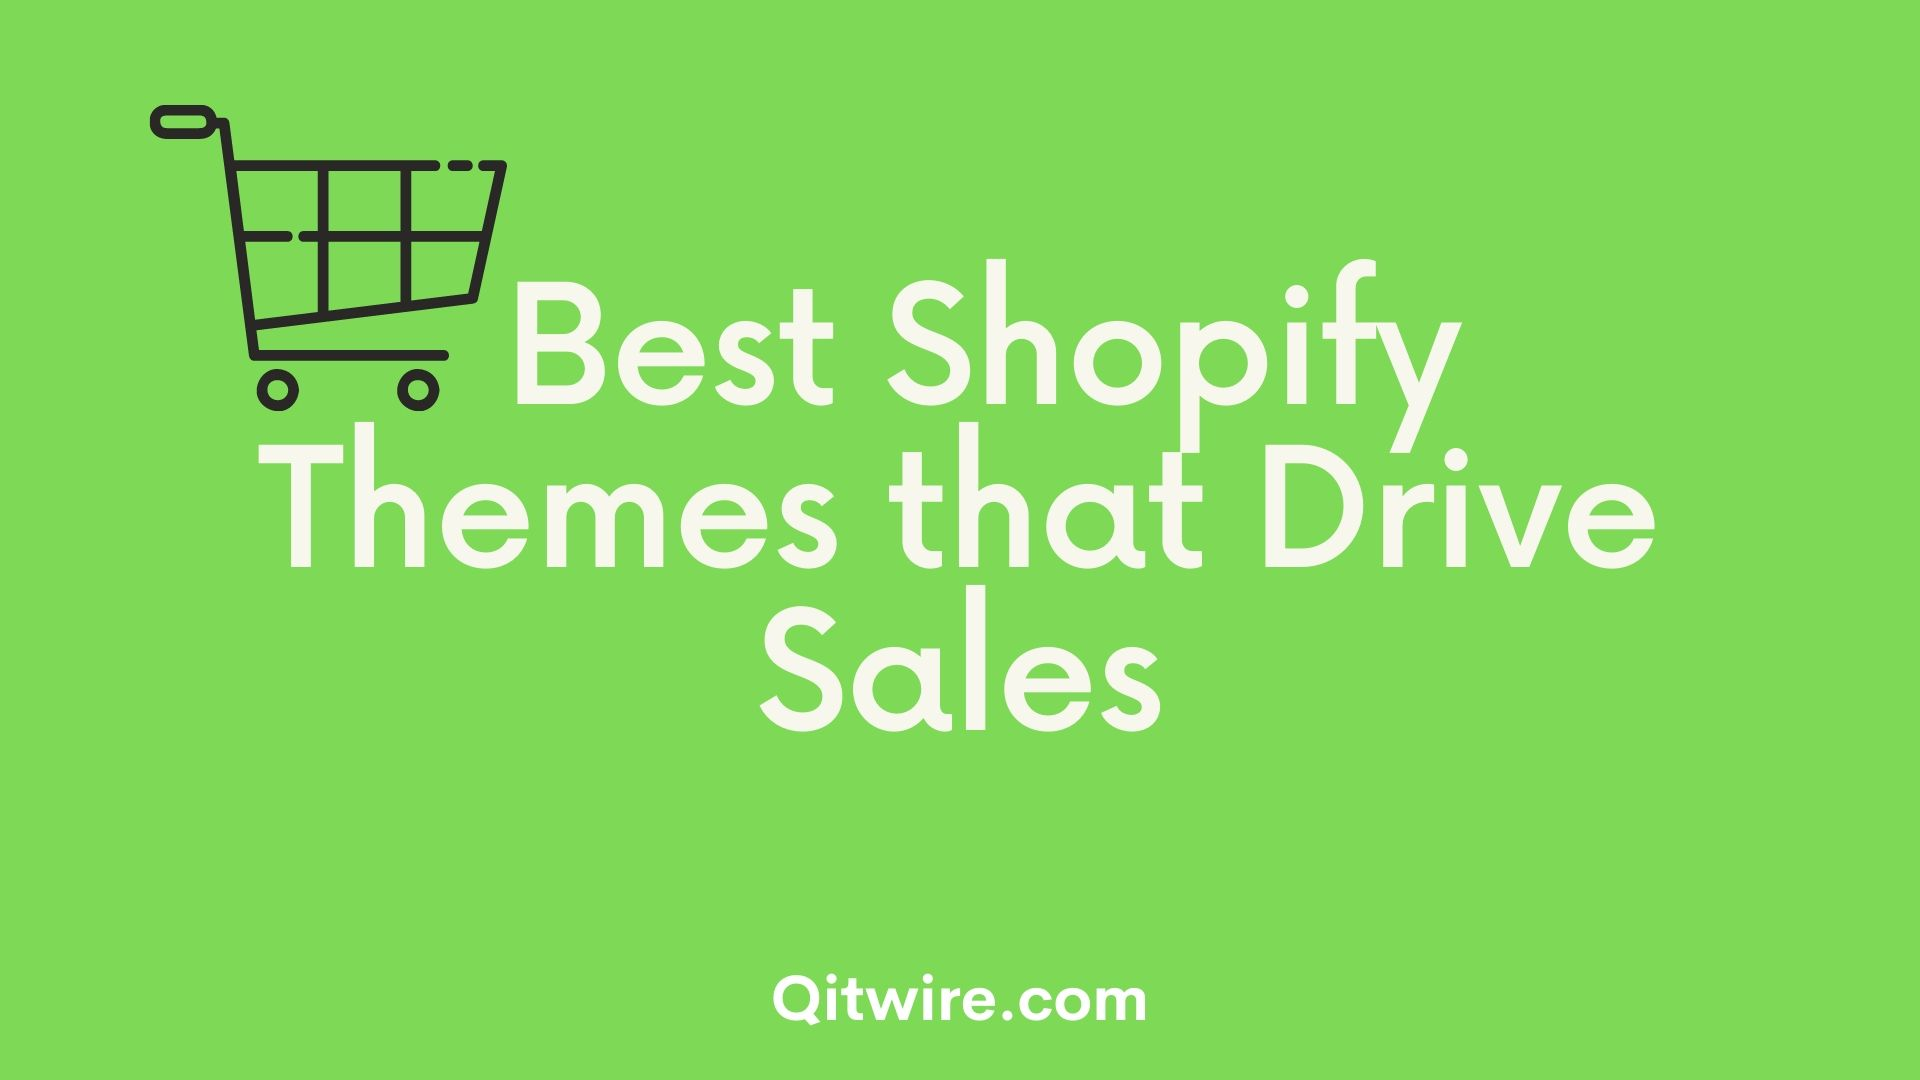 Best Shopify Themes that Drive Sales